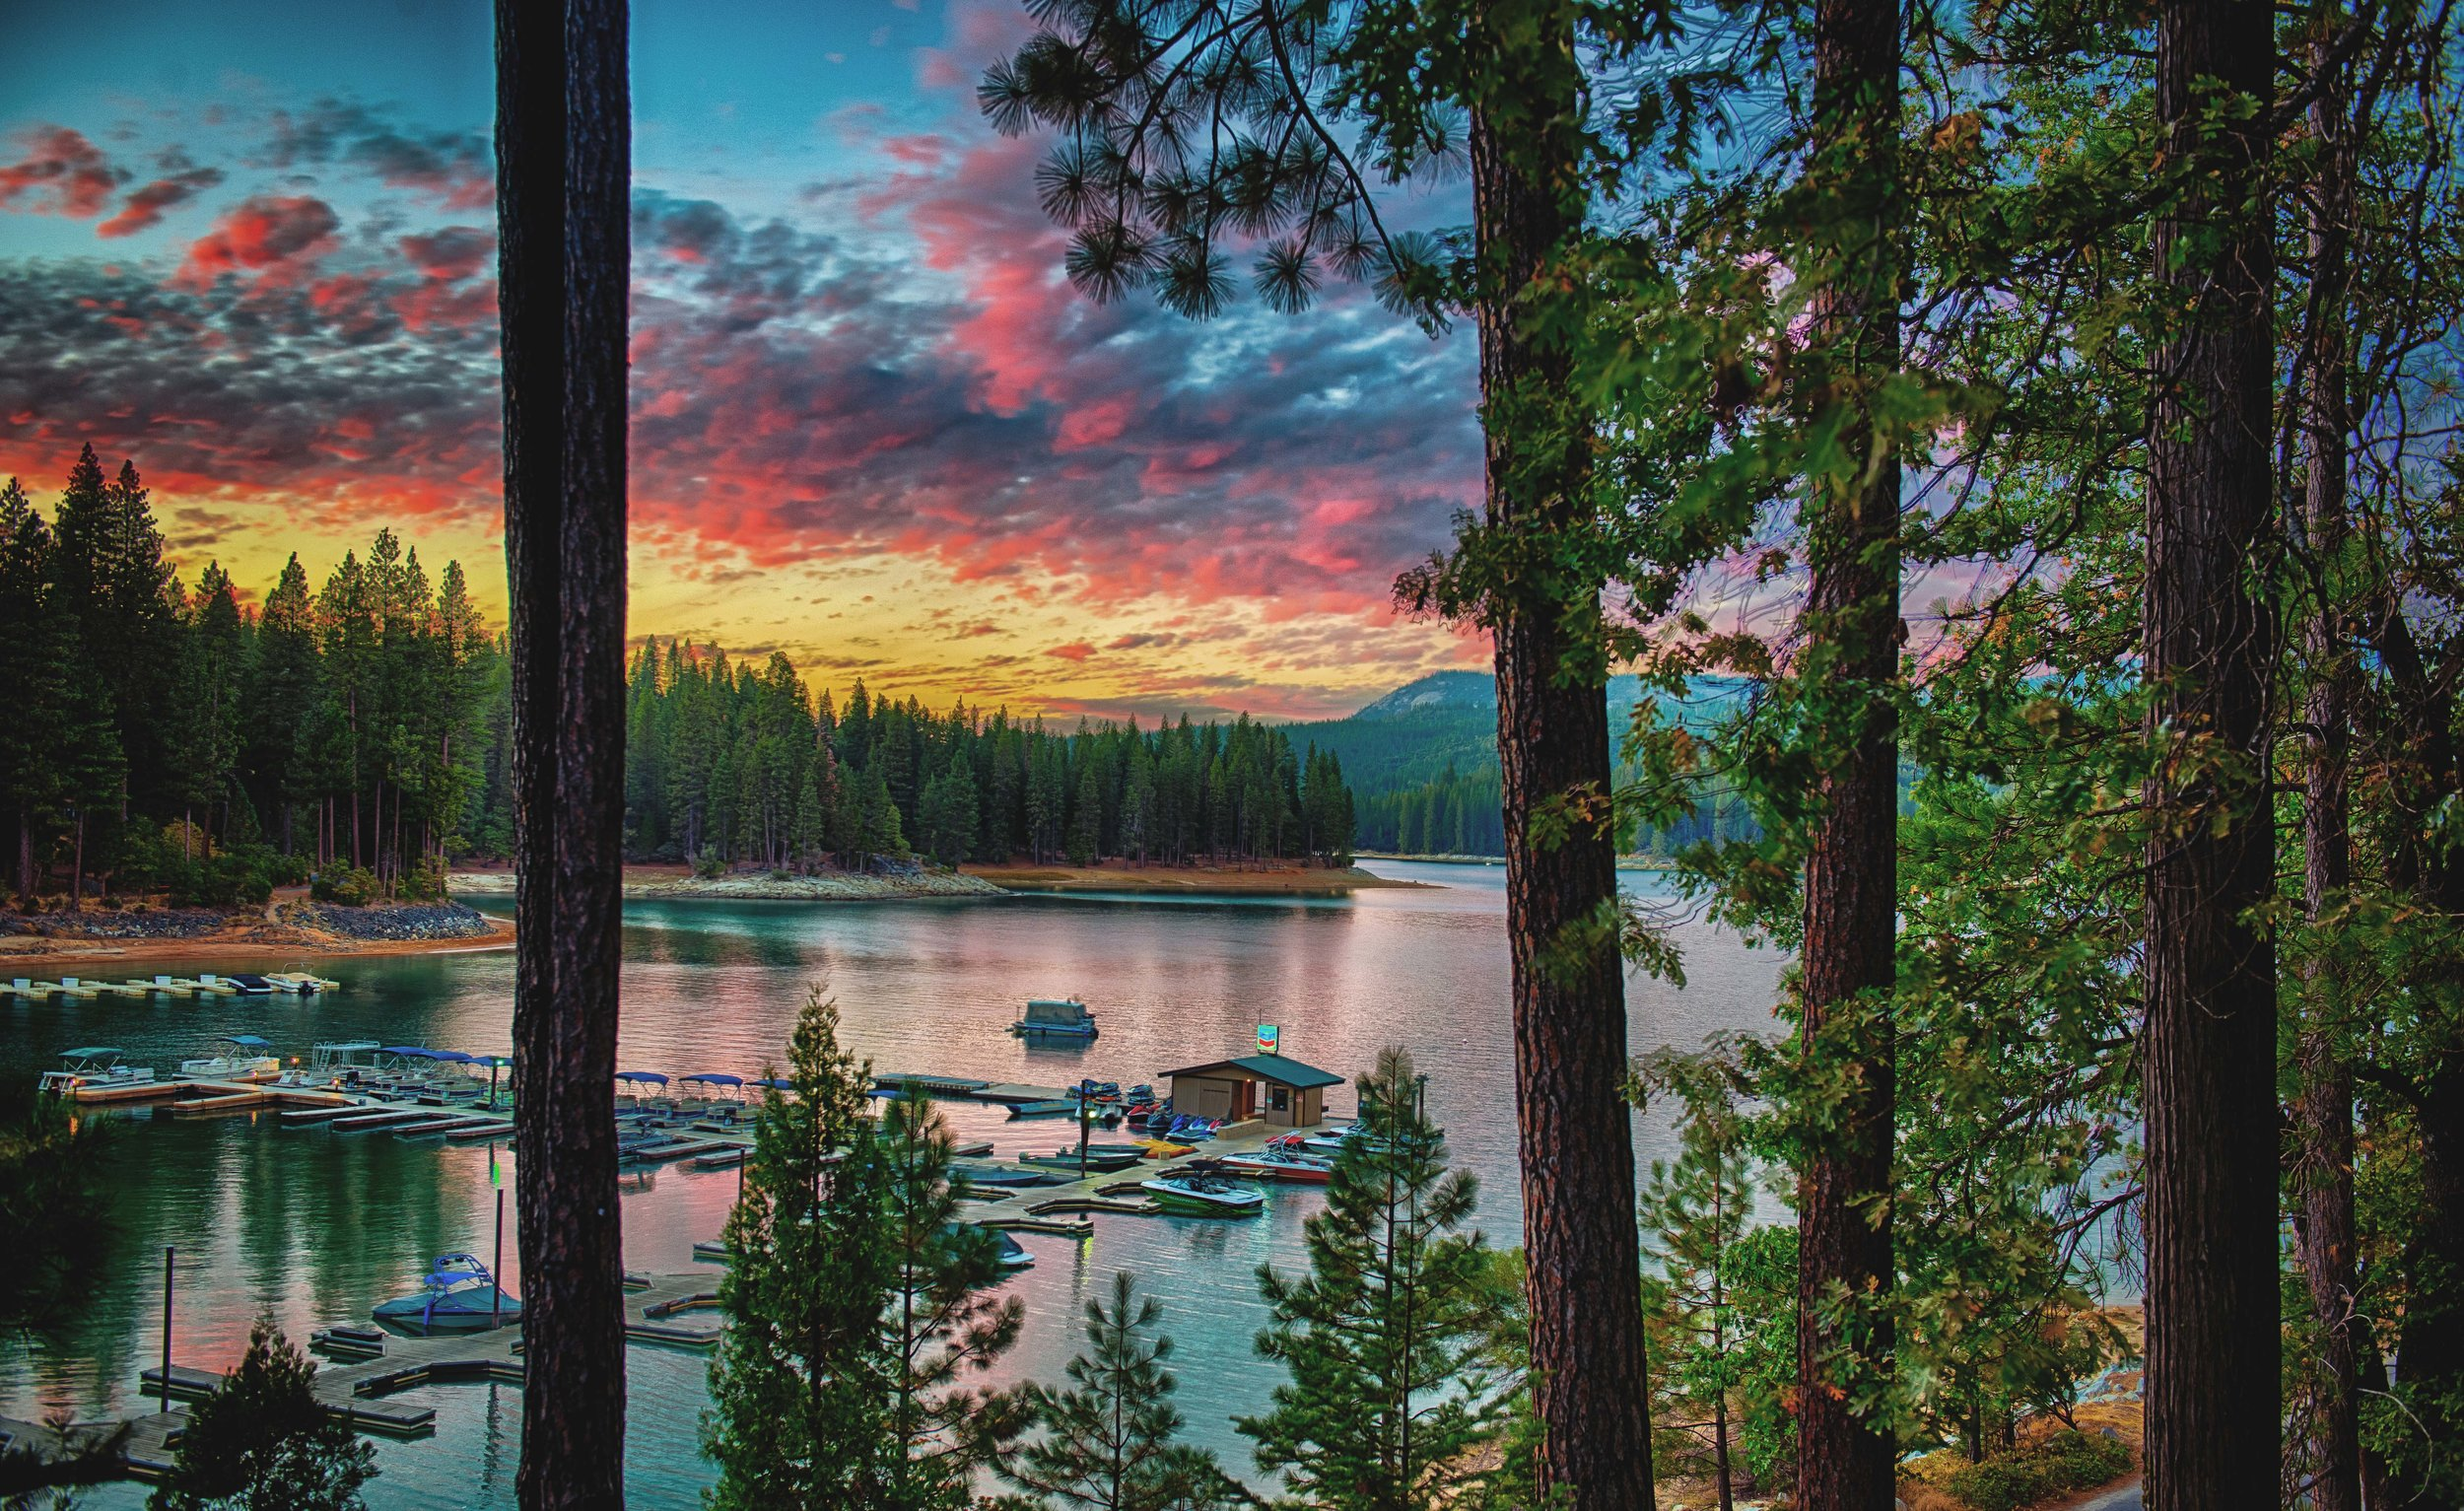 Millers Landing Resort Bass Lake CA.jpg